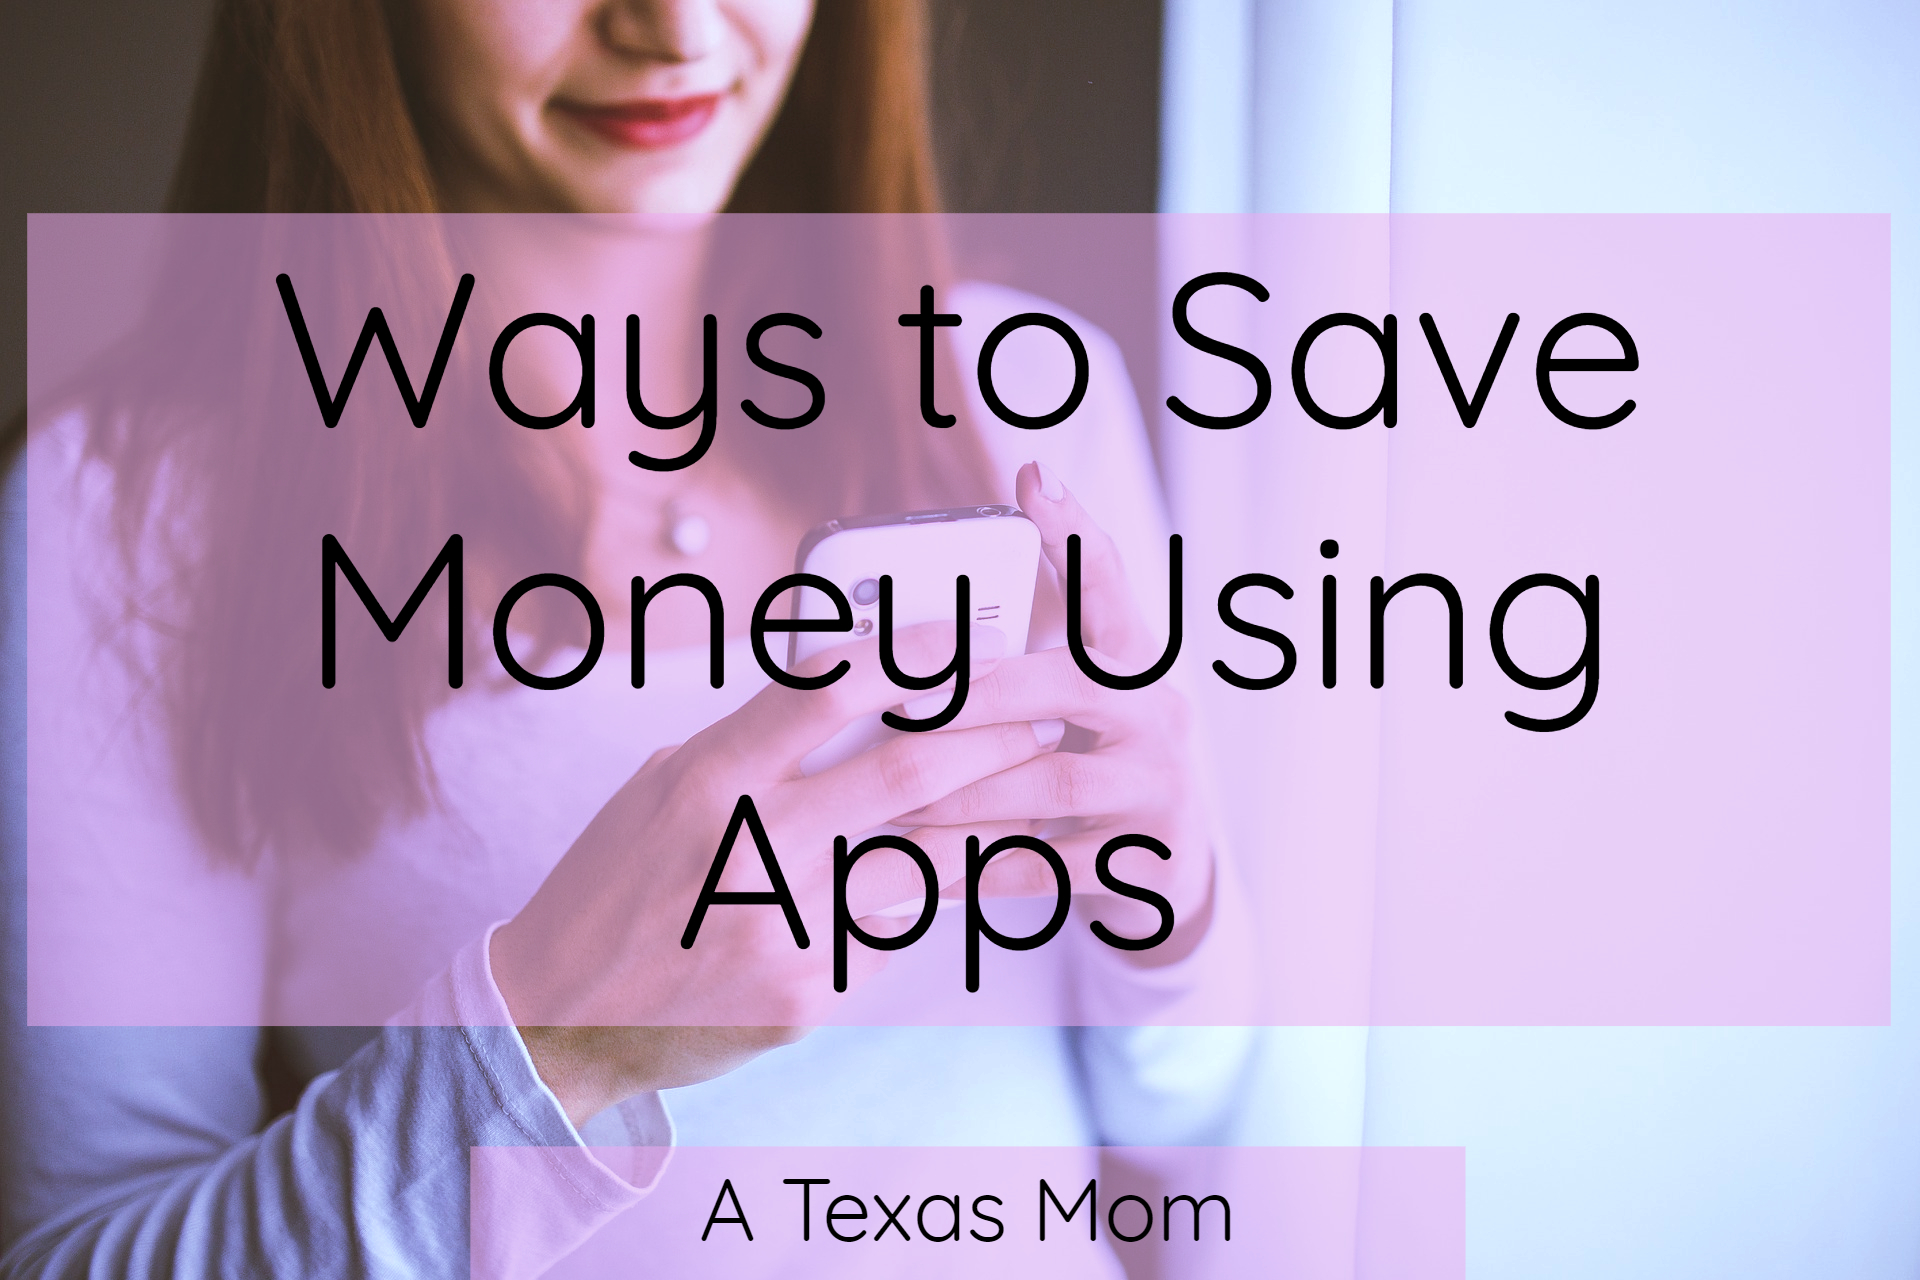 Ways to save money using apps